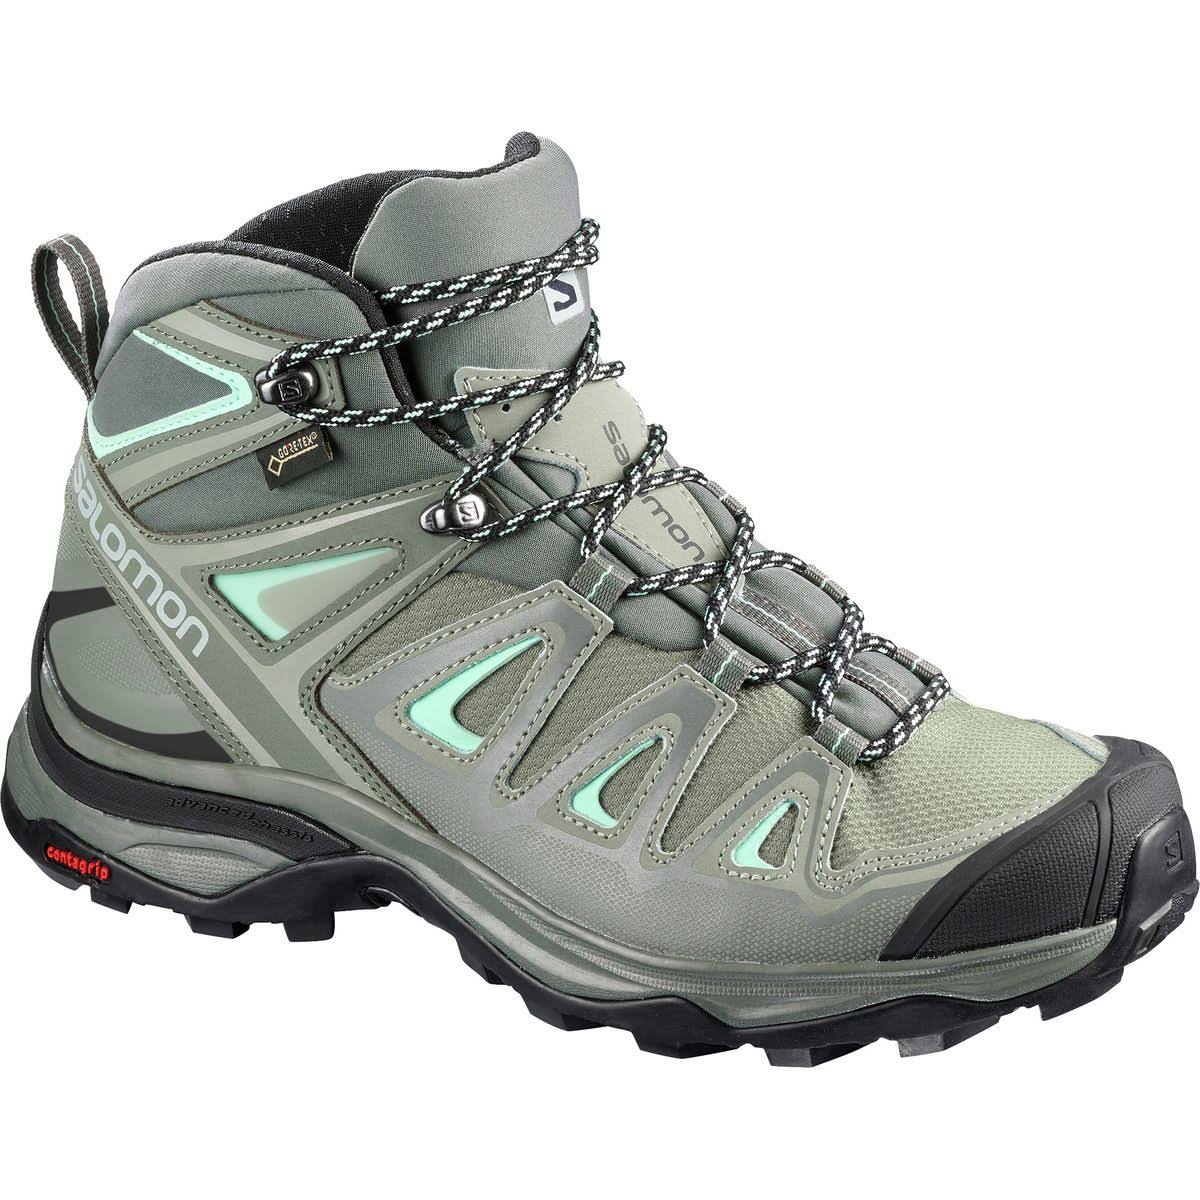 Salomon Women's x Ultra 3 Mid GTX 9.5 / Shadow